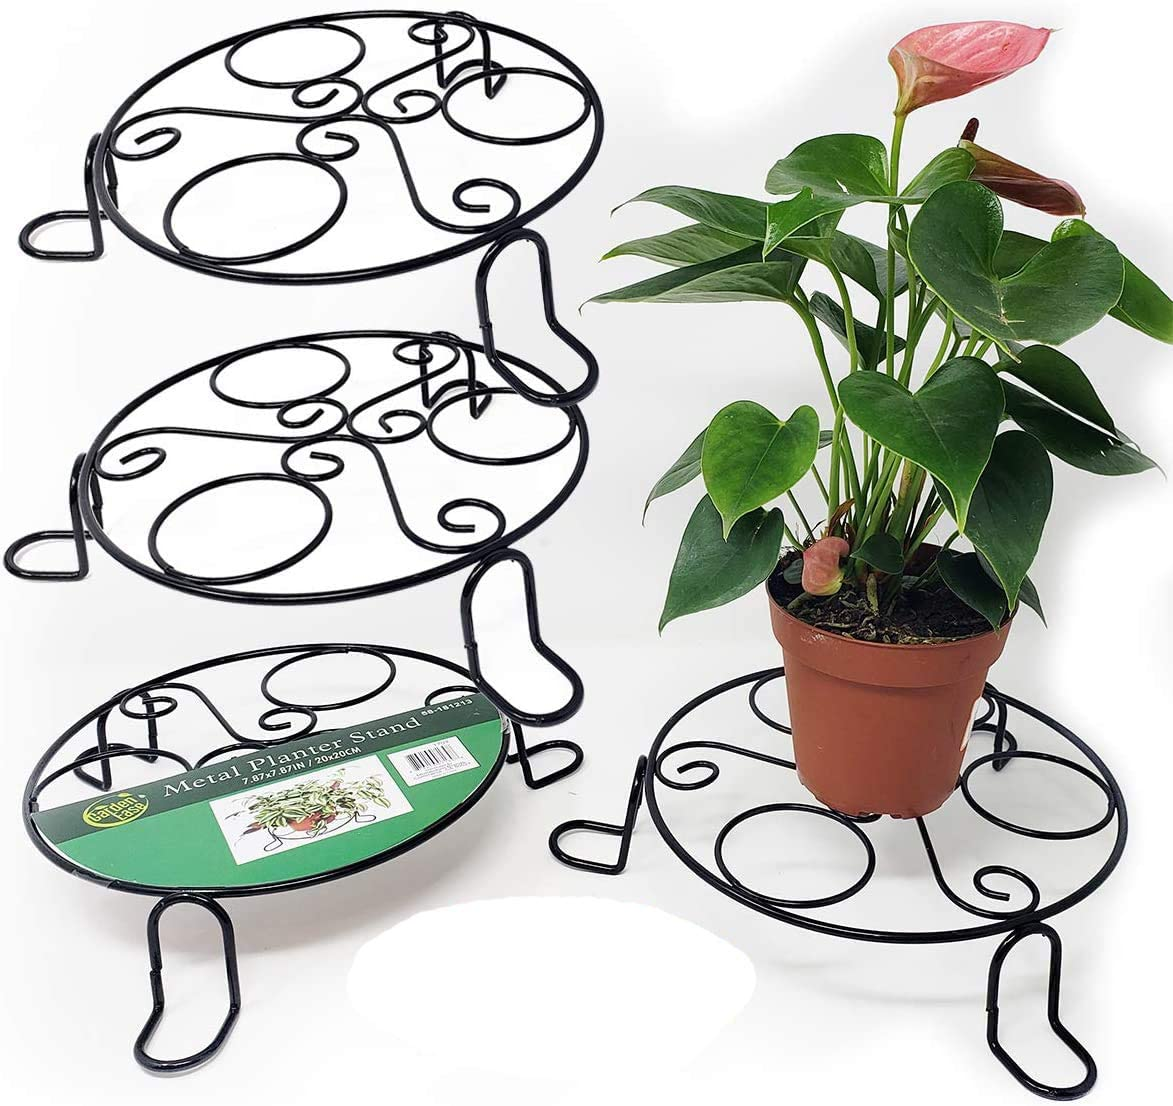 Office Library Lawn Cafe 12.3 * 9CM Patio Garden Restaurant Plant Stand Holder Yard Flower Pot Base Plant Stand for Indoor Outdoor with Non-Slip Mat for Home